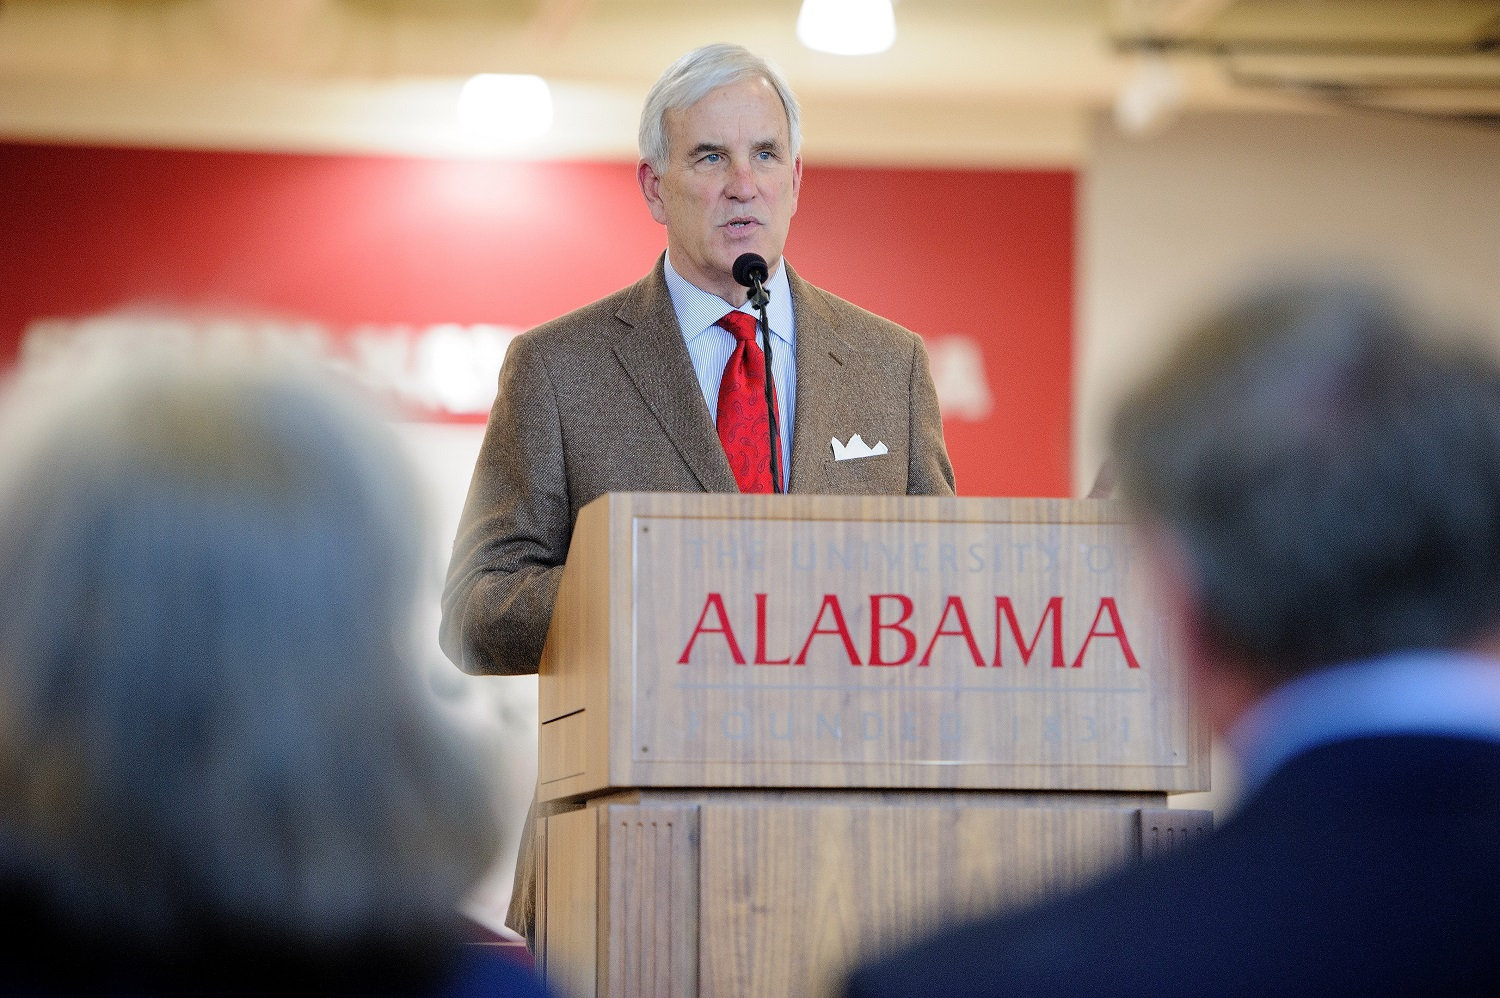 Mike Mouron, UA alumnus and donor, speaks during the reception for the opening of Stran-Hardin Arena. Mouron and his wife, Kathy, contributed $4 million to the $10 million project. (Matthew Wood / UA Strategic Communications)